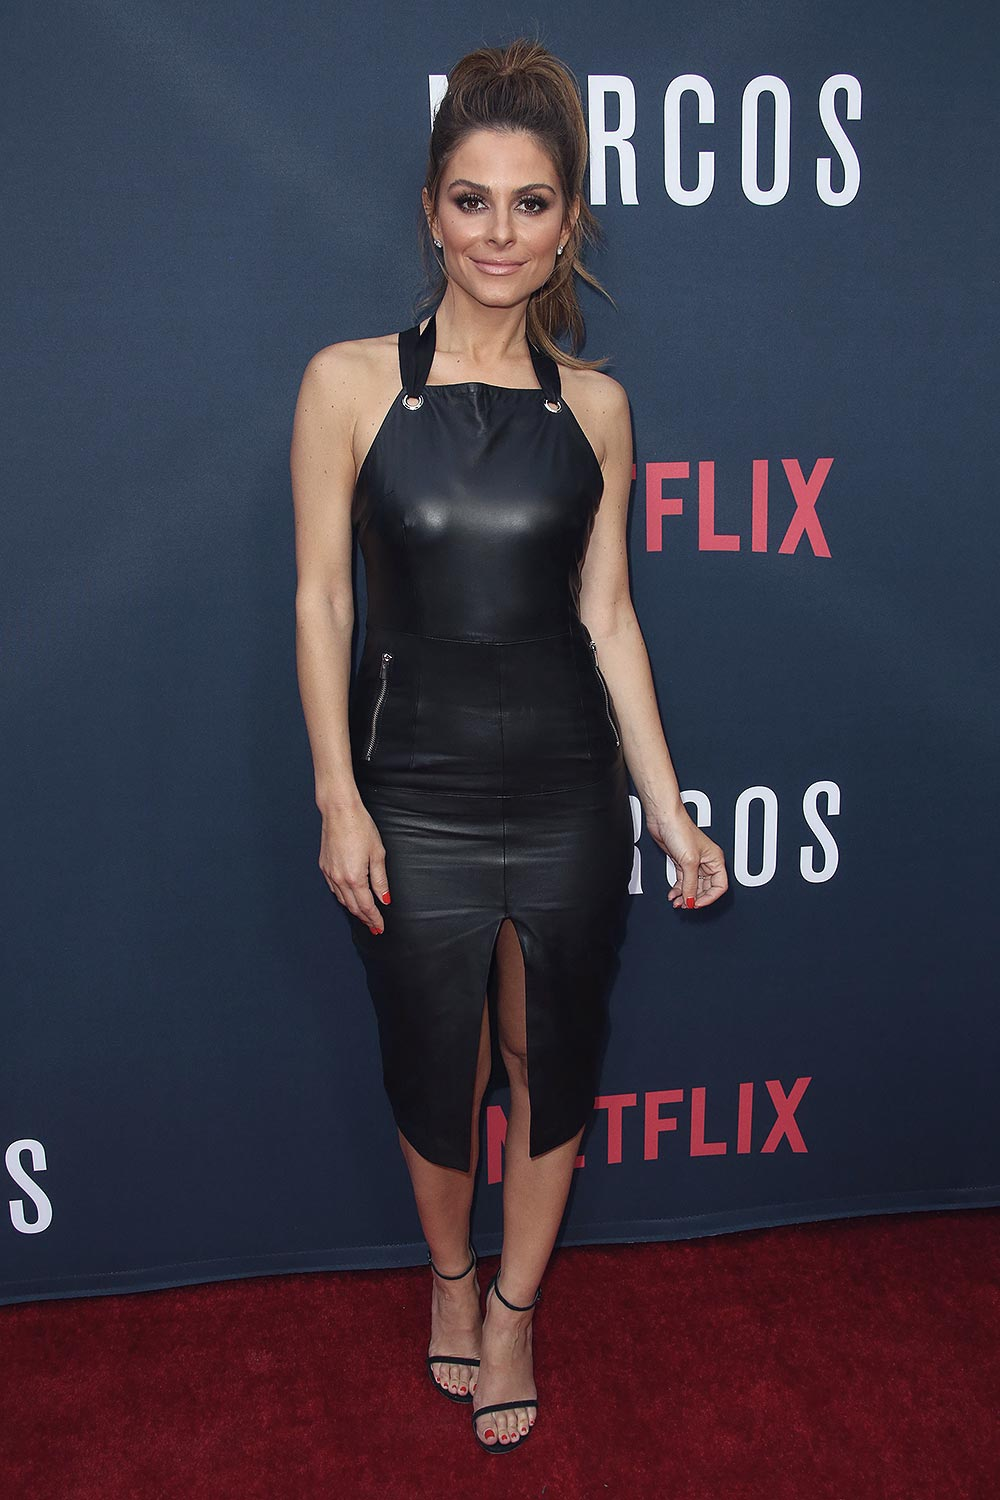 Maria Menounos attends the Season 2 premiere of Netflix's Narcos